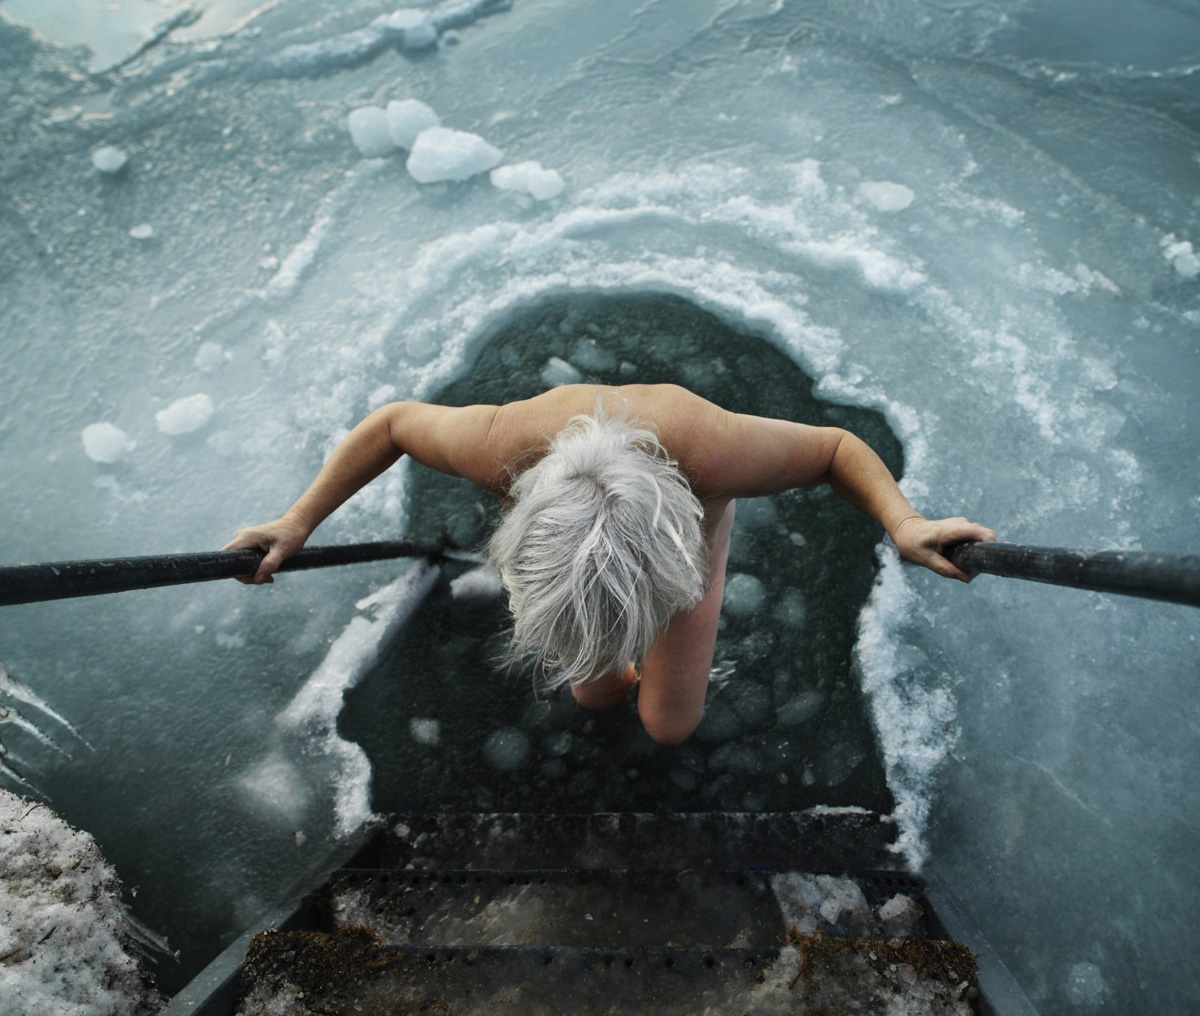 Channel-your-inner-Sisu-through-outdoor-swimming-.jpg